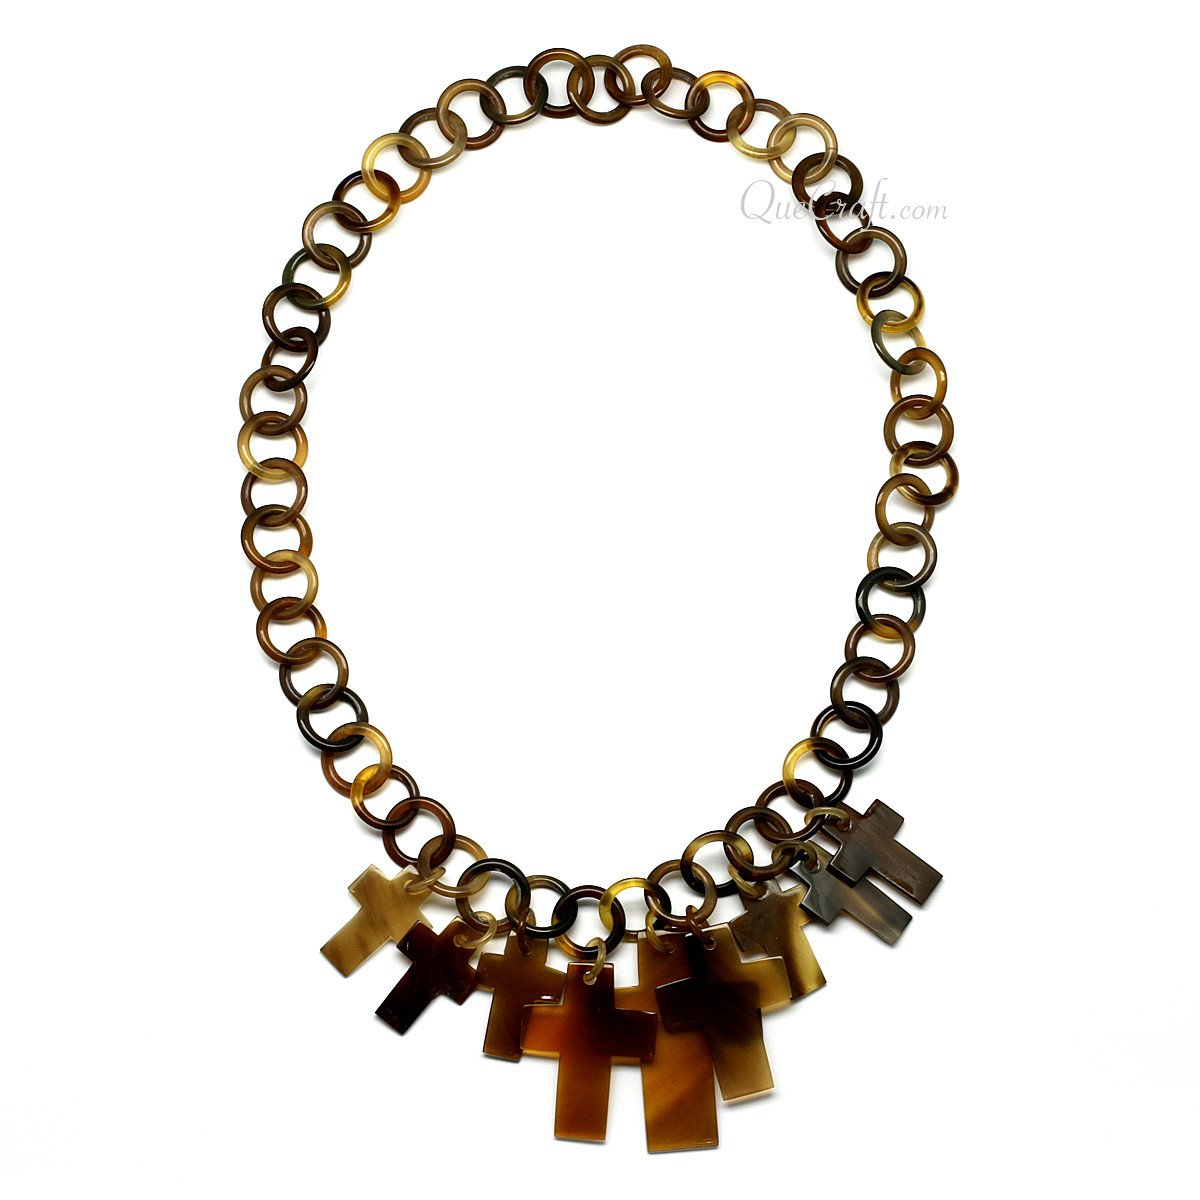 Horn Chain Necklace #10266 - HORN.JEWELRY by QueCraft